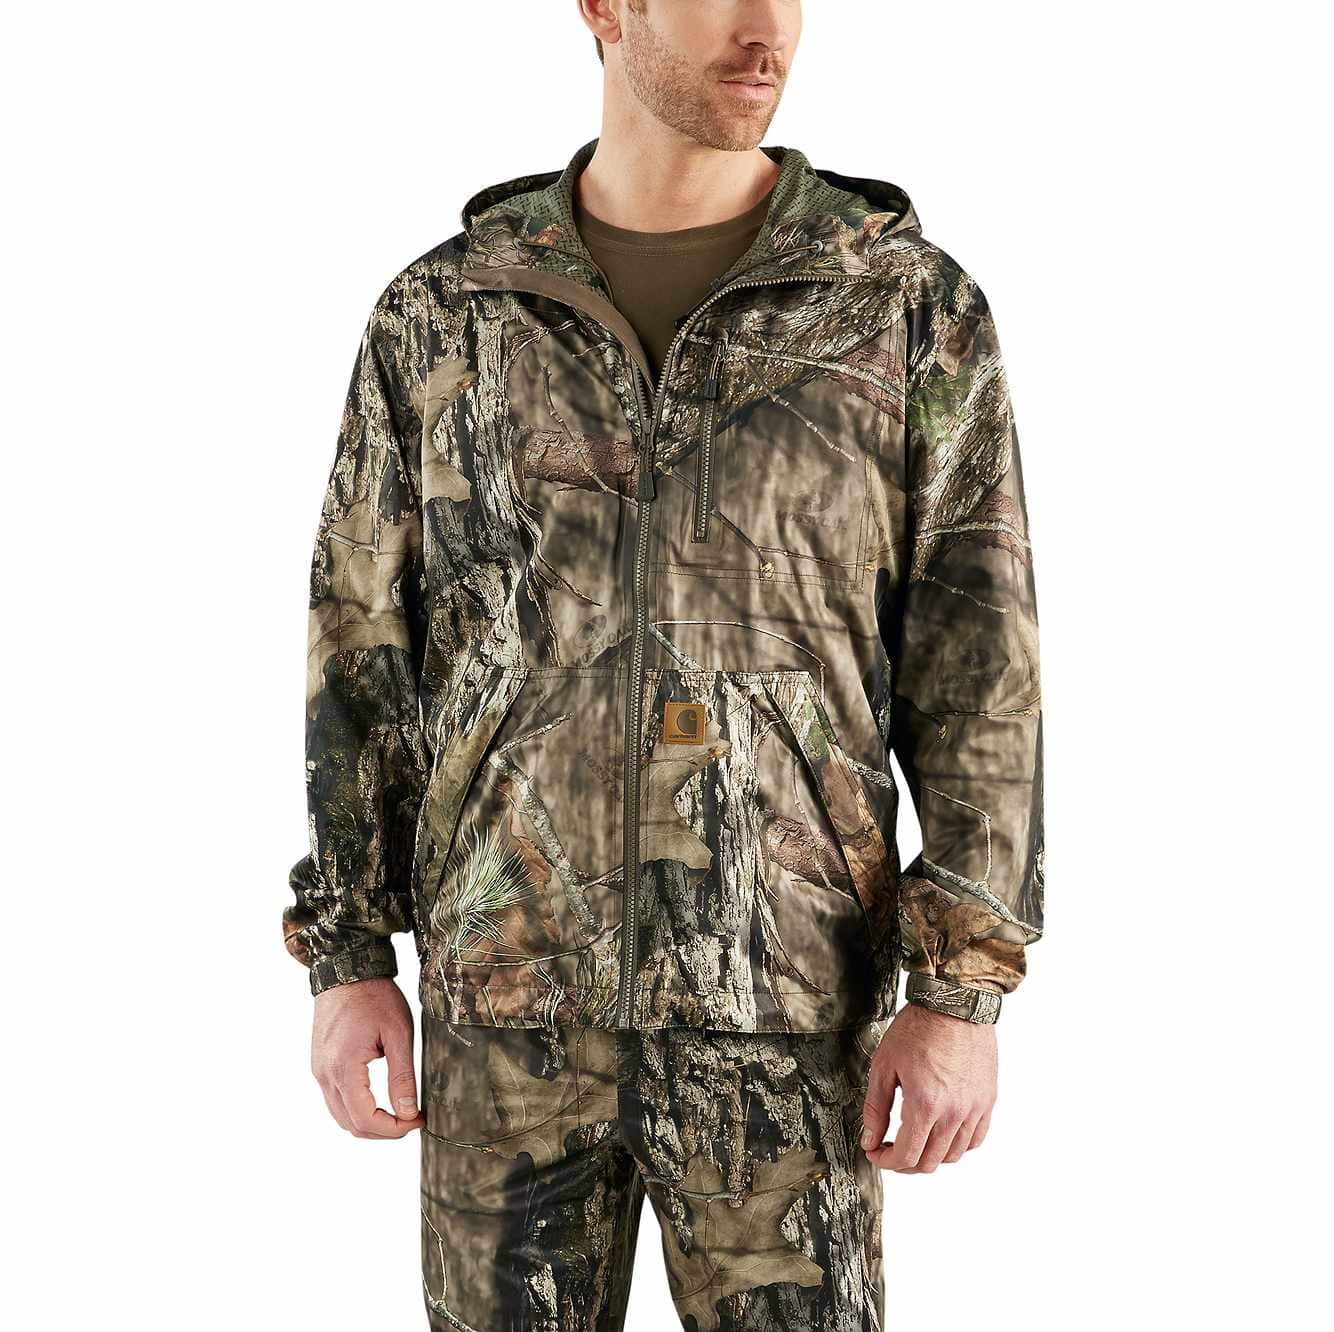 Picture of Stormy Woods Camo Jacket in Mossy Oak Break-Up Country